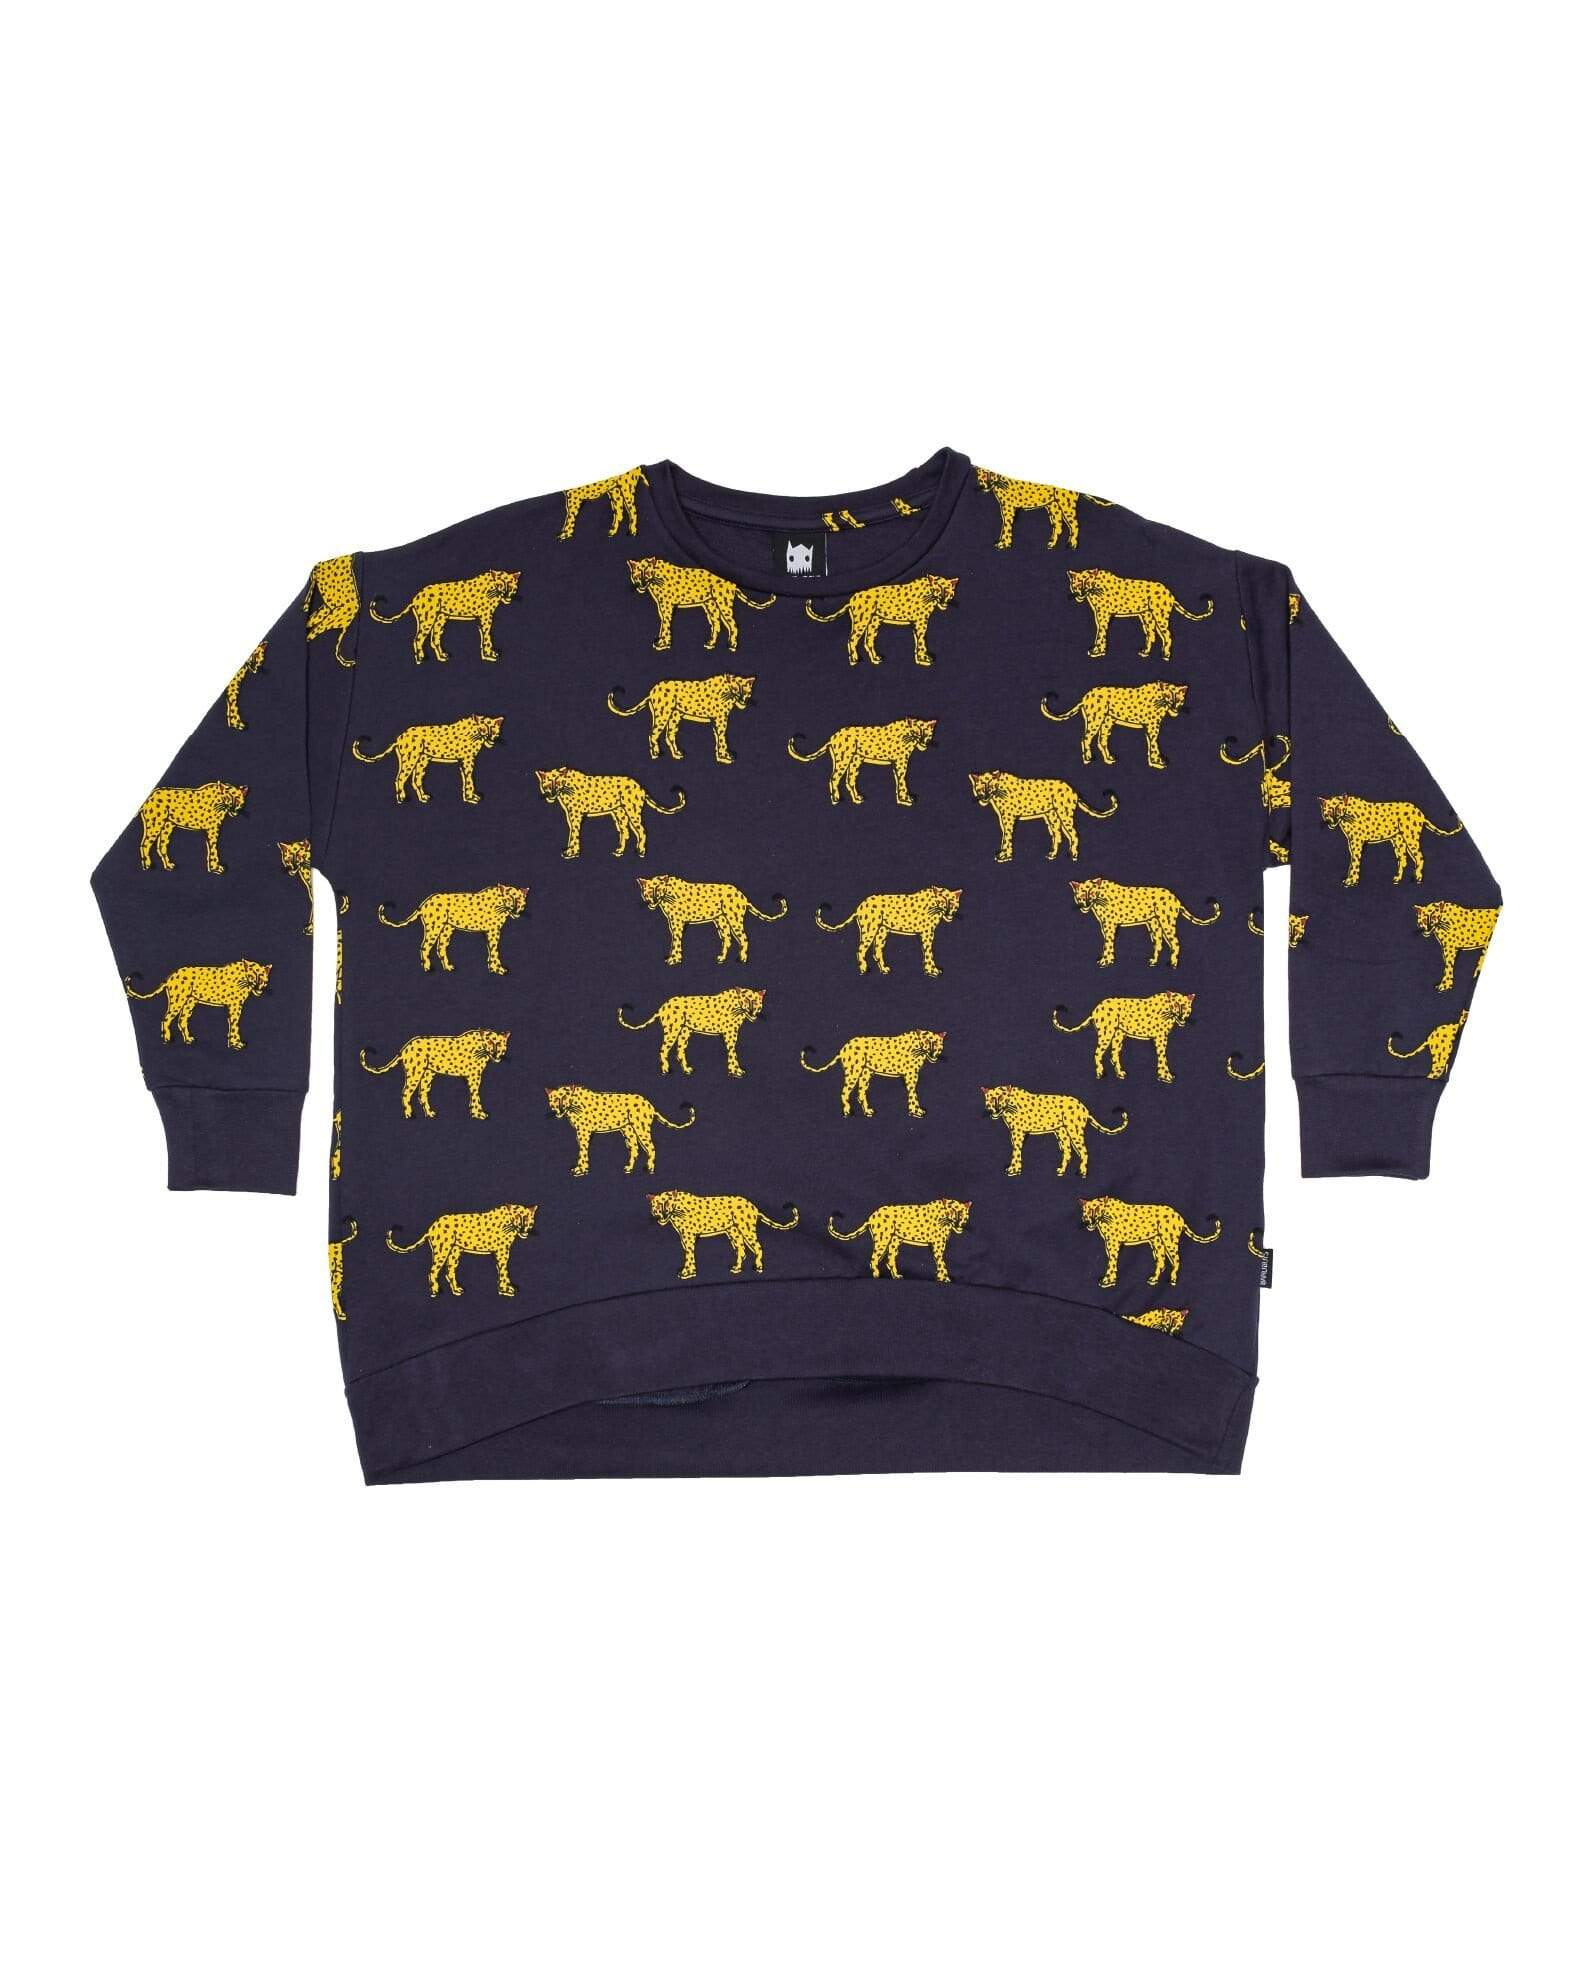 Band of boys Jumpers Yellow & Black Leopard Oversized Jumper - Navy